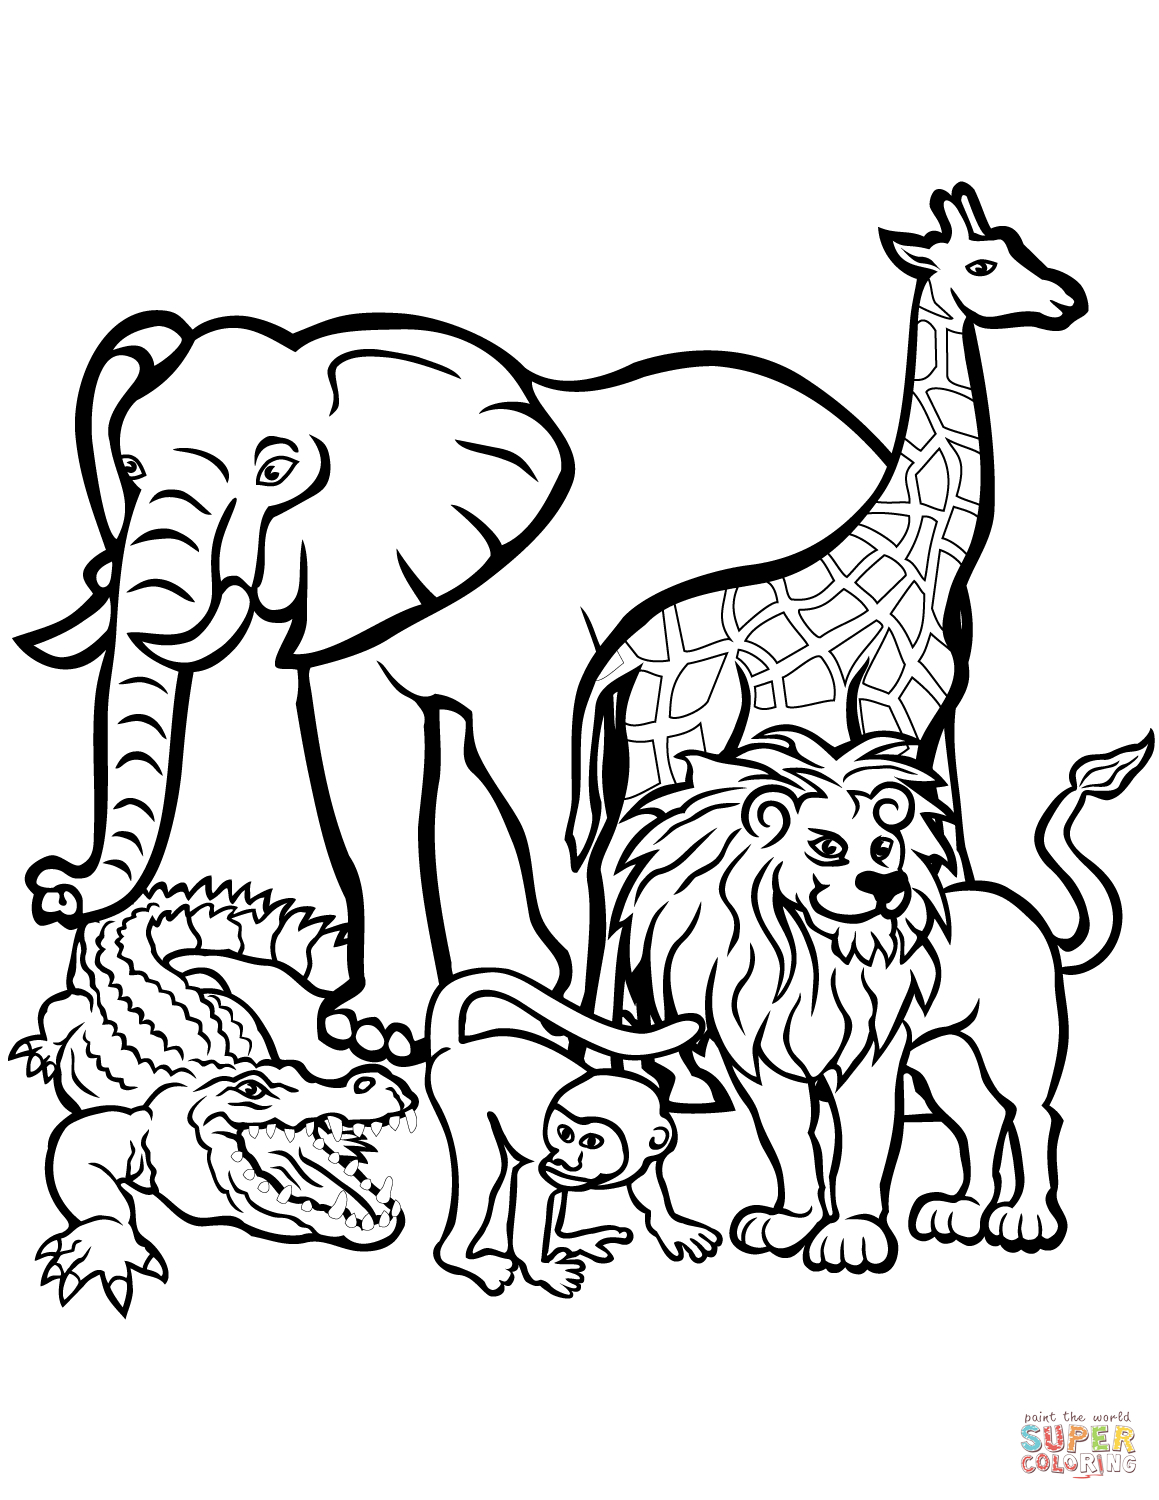 10+ Elegant Image of Wild Animal Coloring Pages - birijus.com